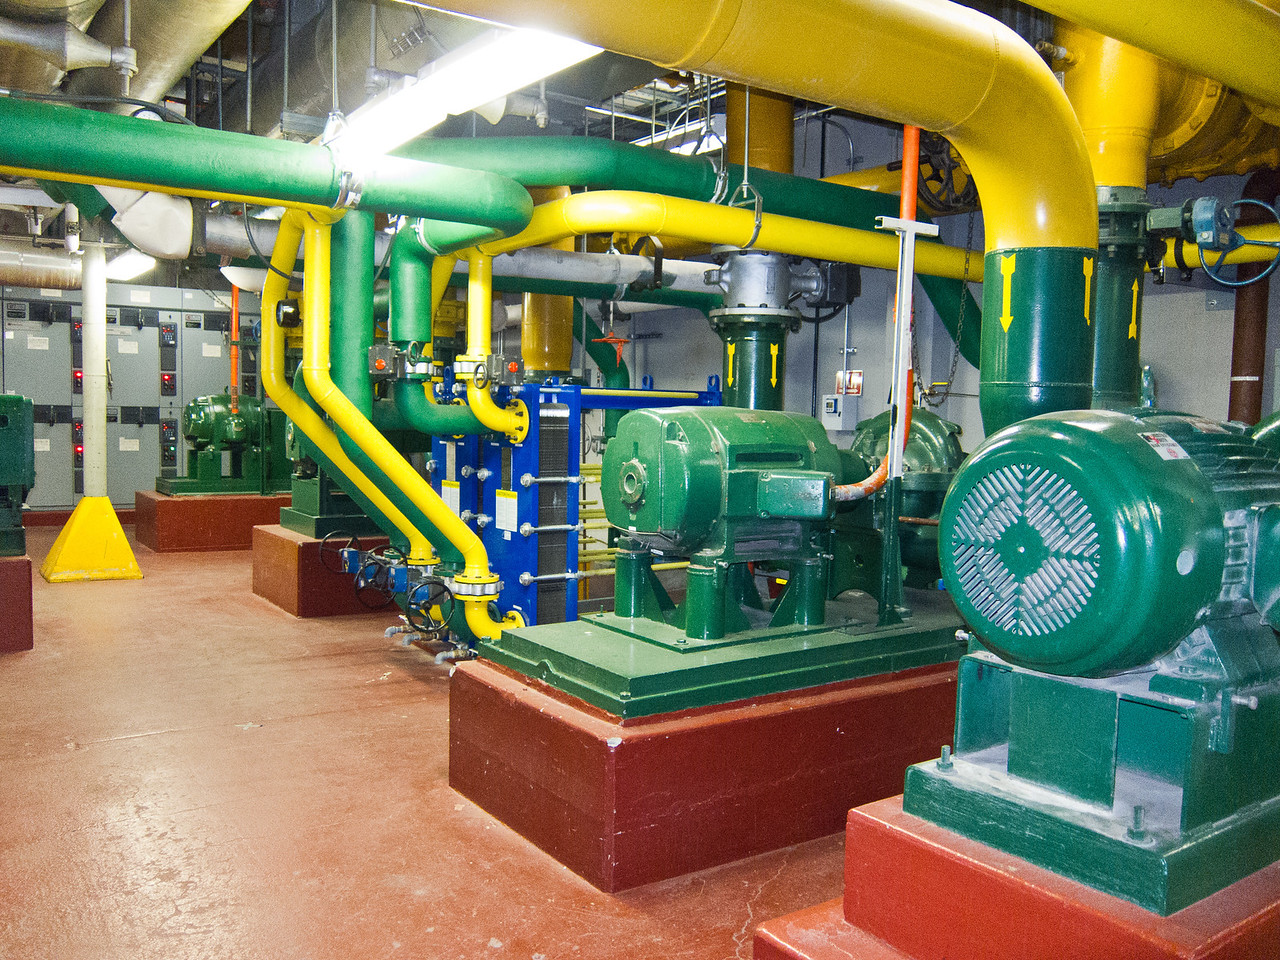 Several pumps. Most of the pipes are color coded. This place is amazingly clean for a huge industrial installation. It is clear that maintenance is taken seriously.